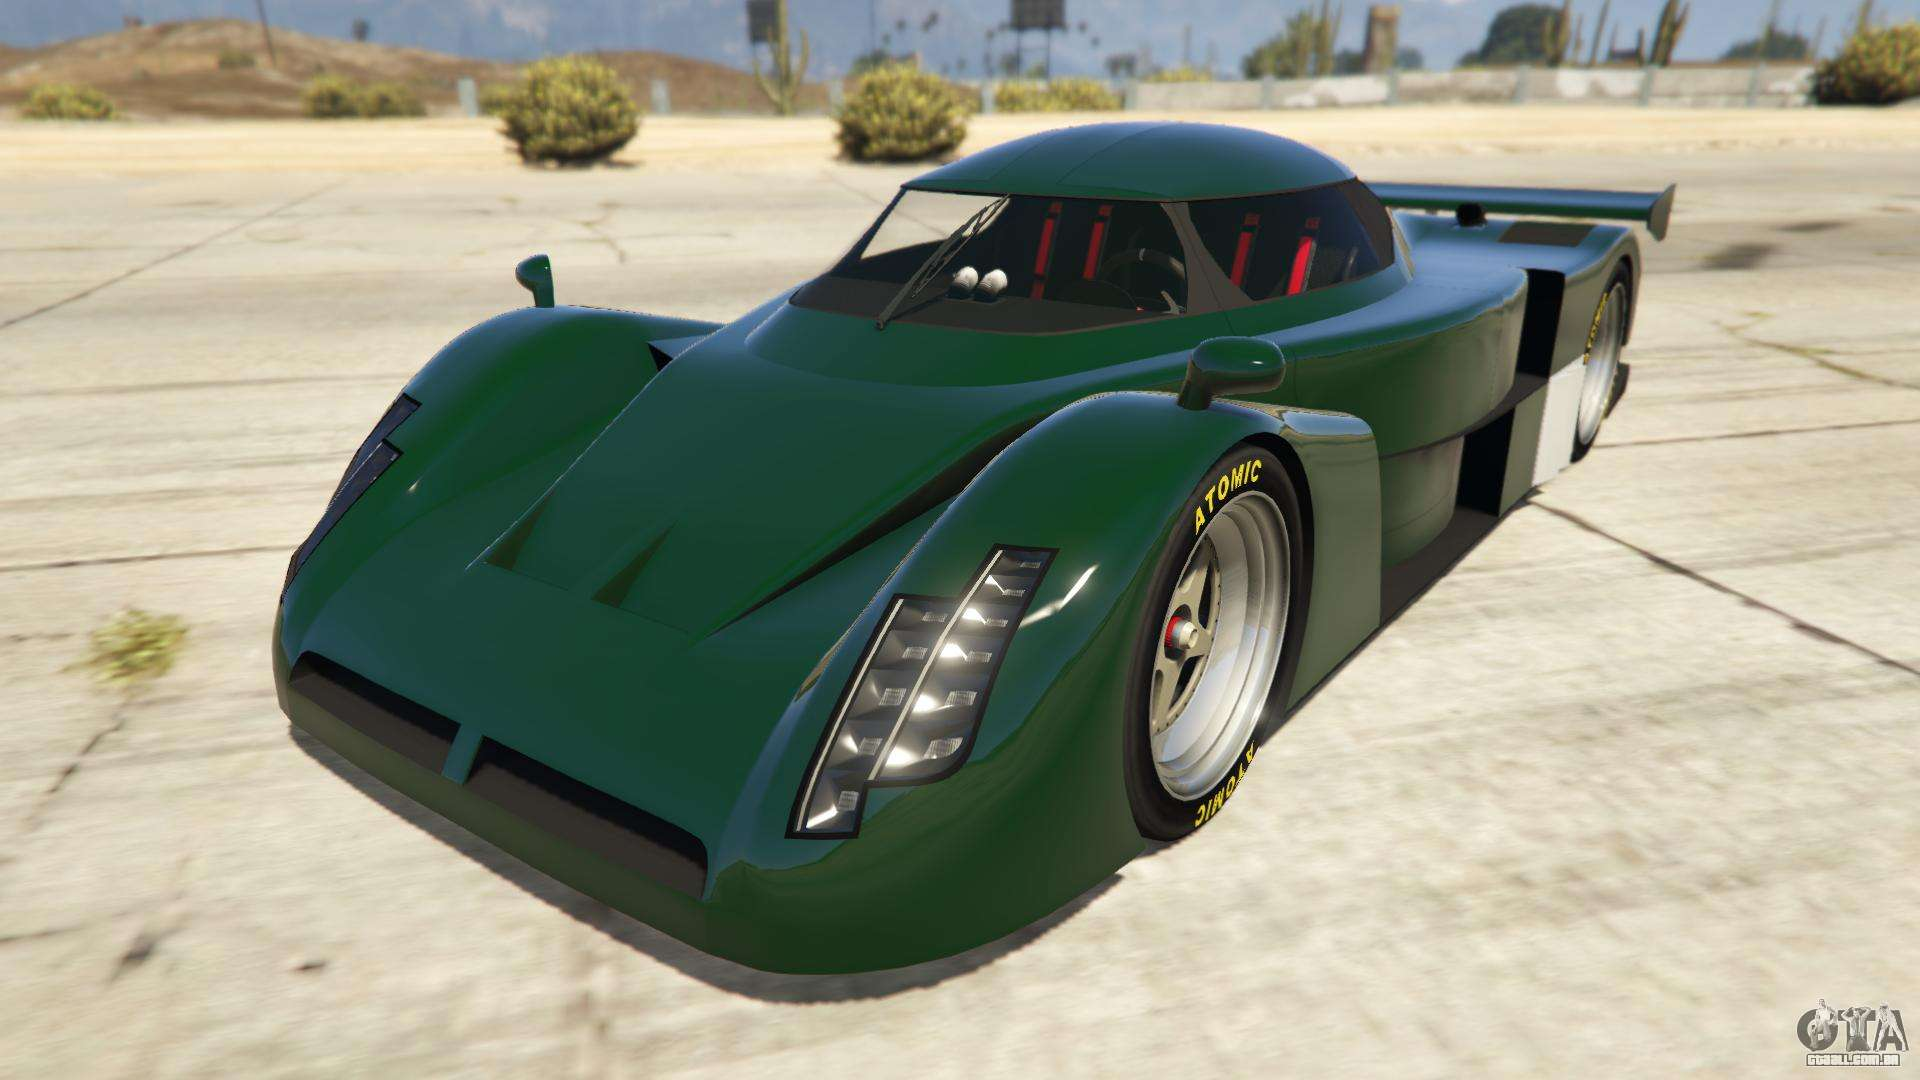 Annis RE-7B do GTA Online - vista frontal